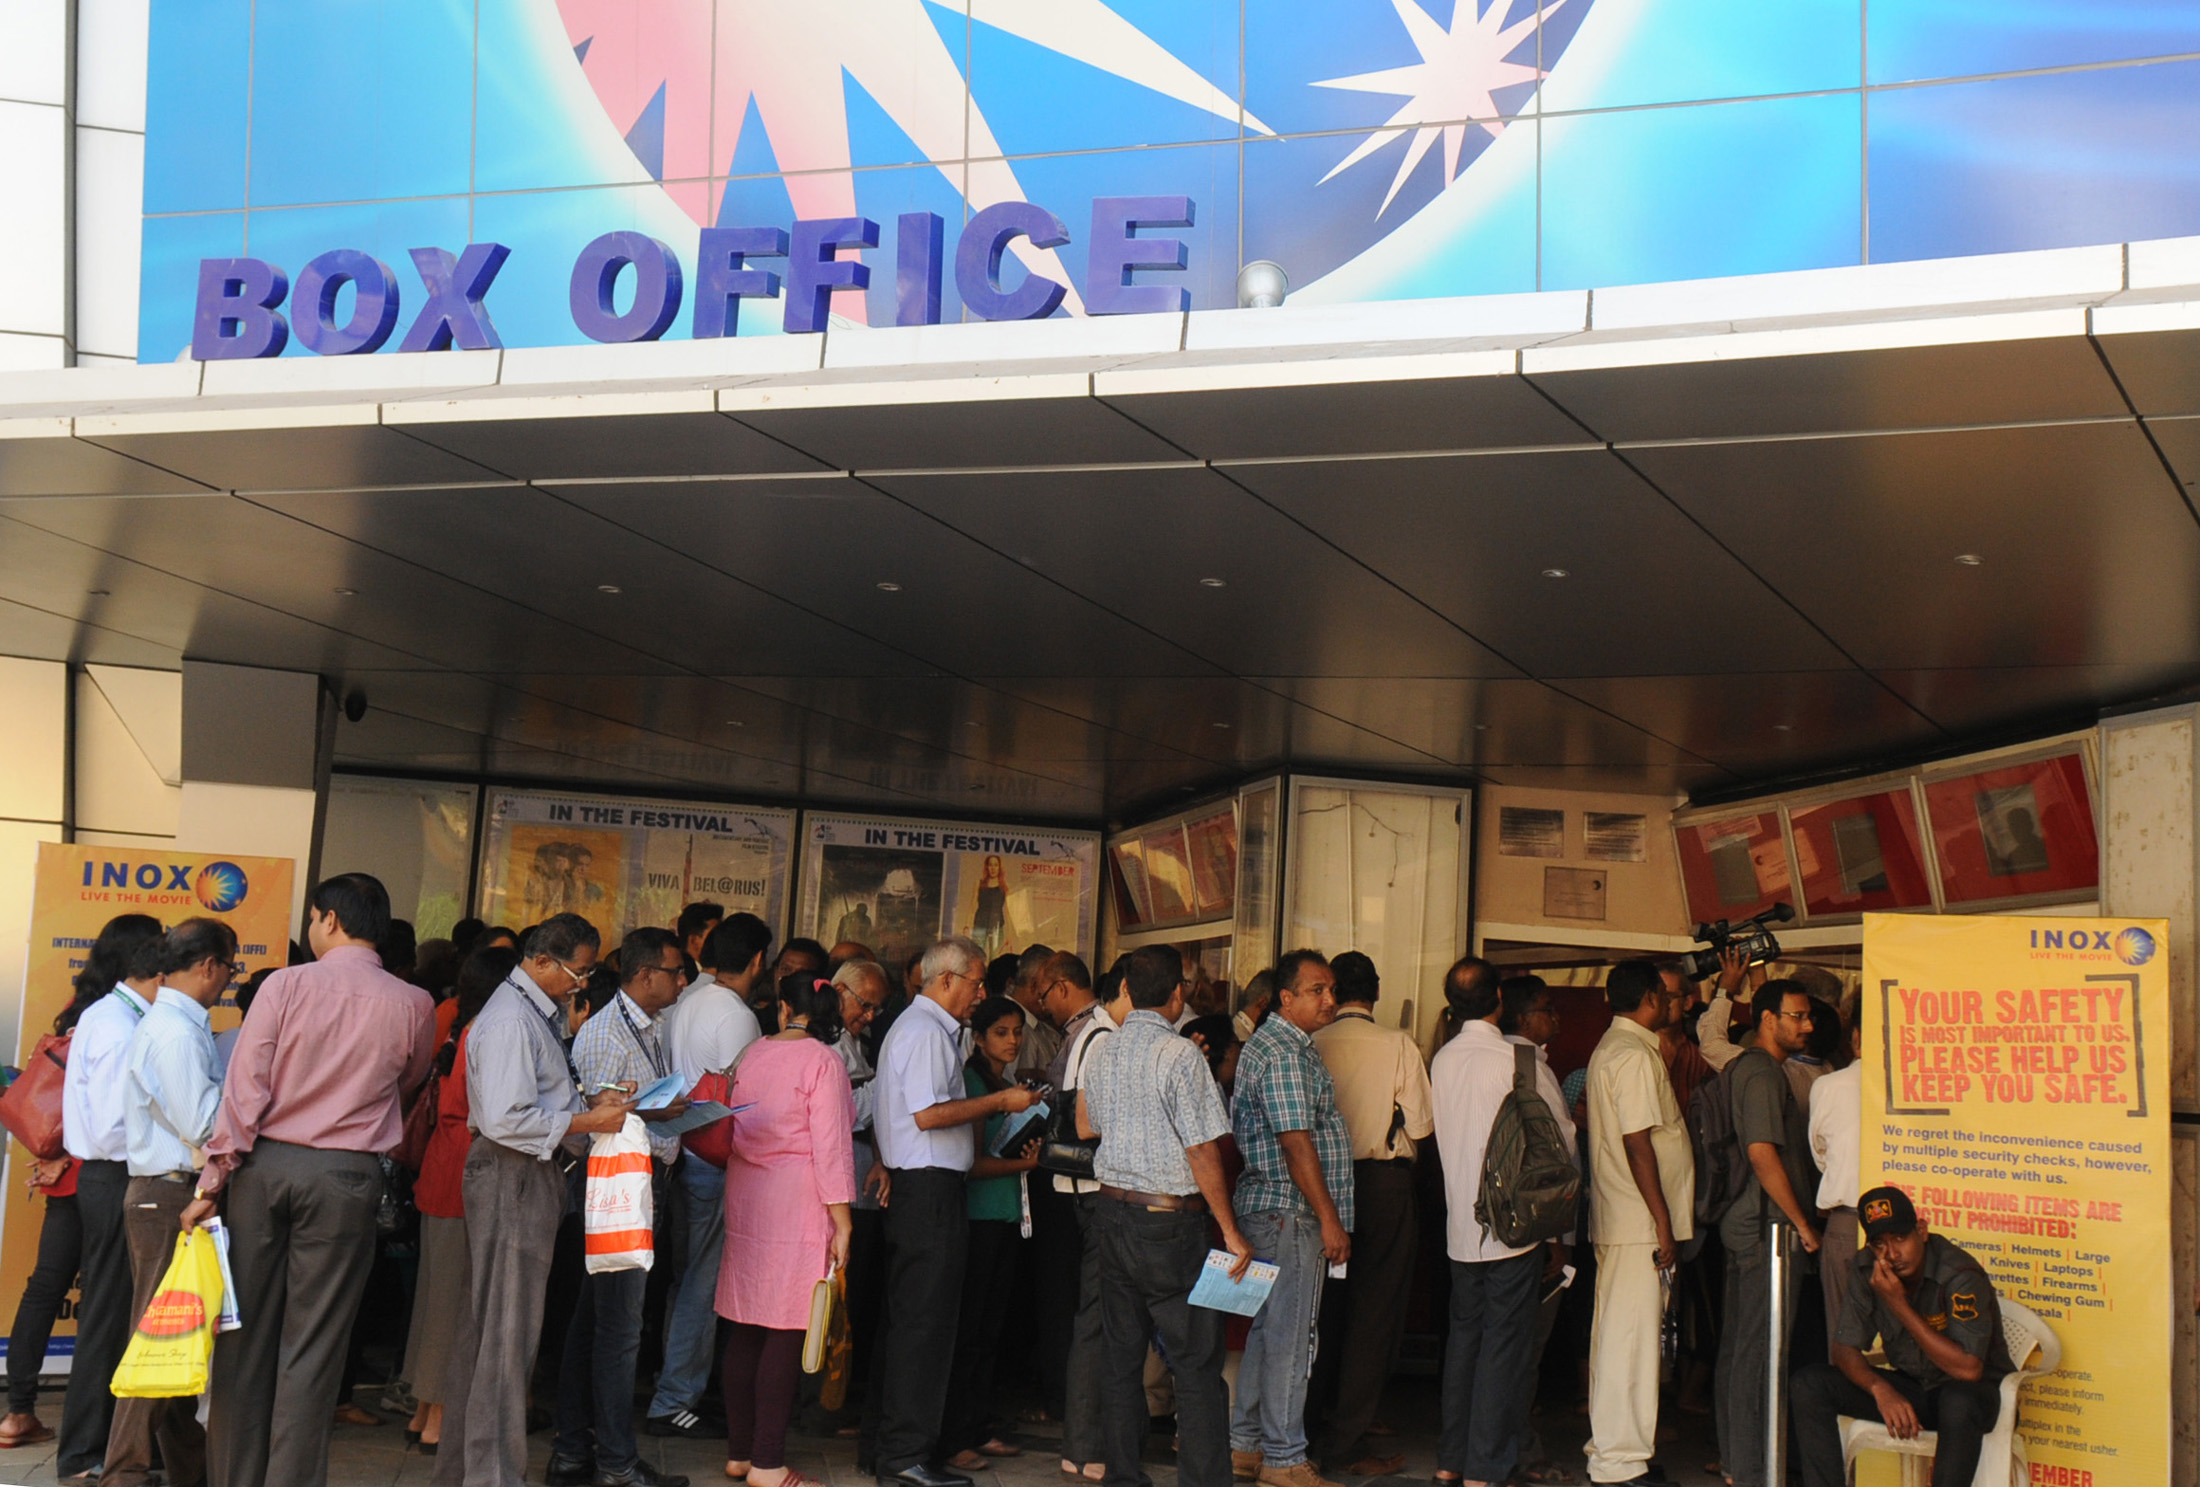 File Cinema Enthusiastic Line Up For Getting A Ticket For The First Show To Be Screened At The Inox Multiplex Theatre Which Is One Of The Venues For The 44th International Film Festival